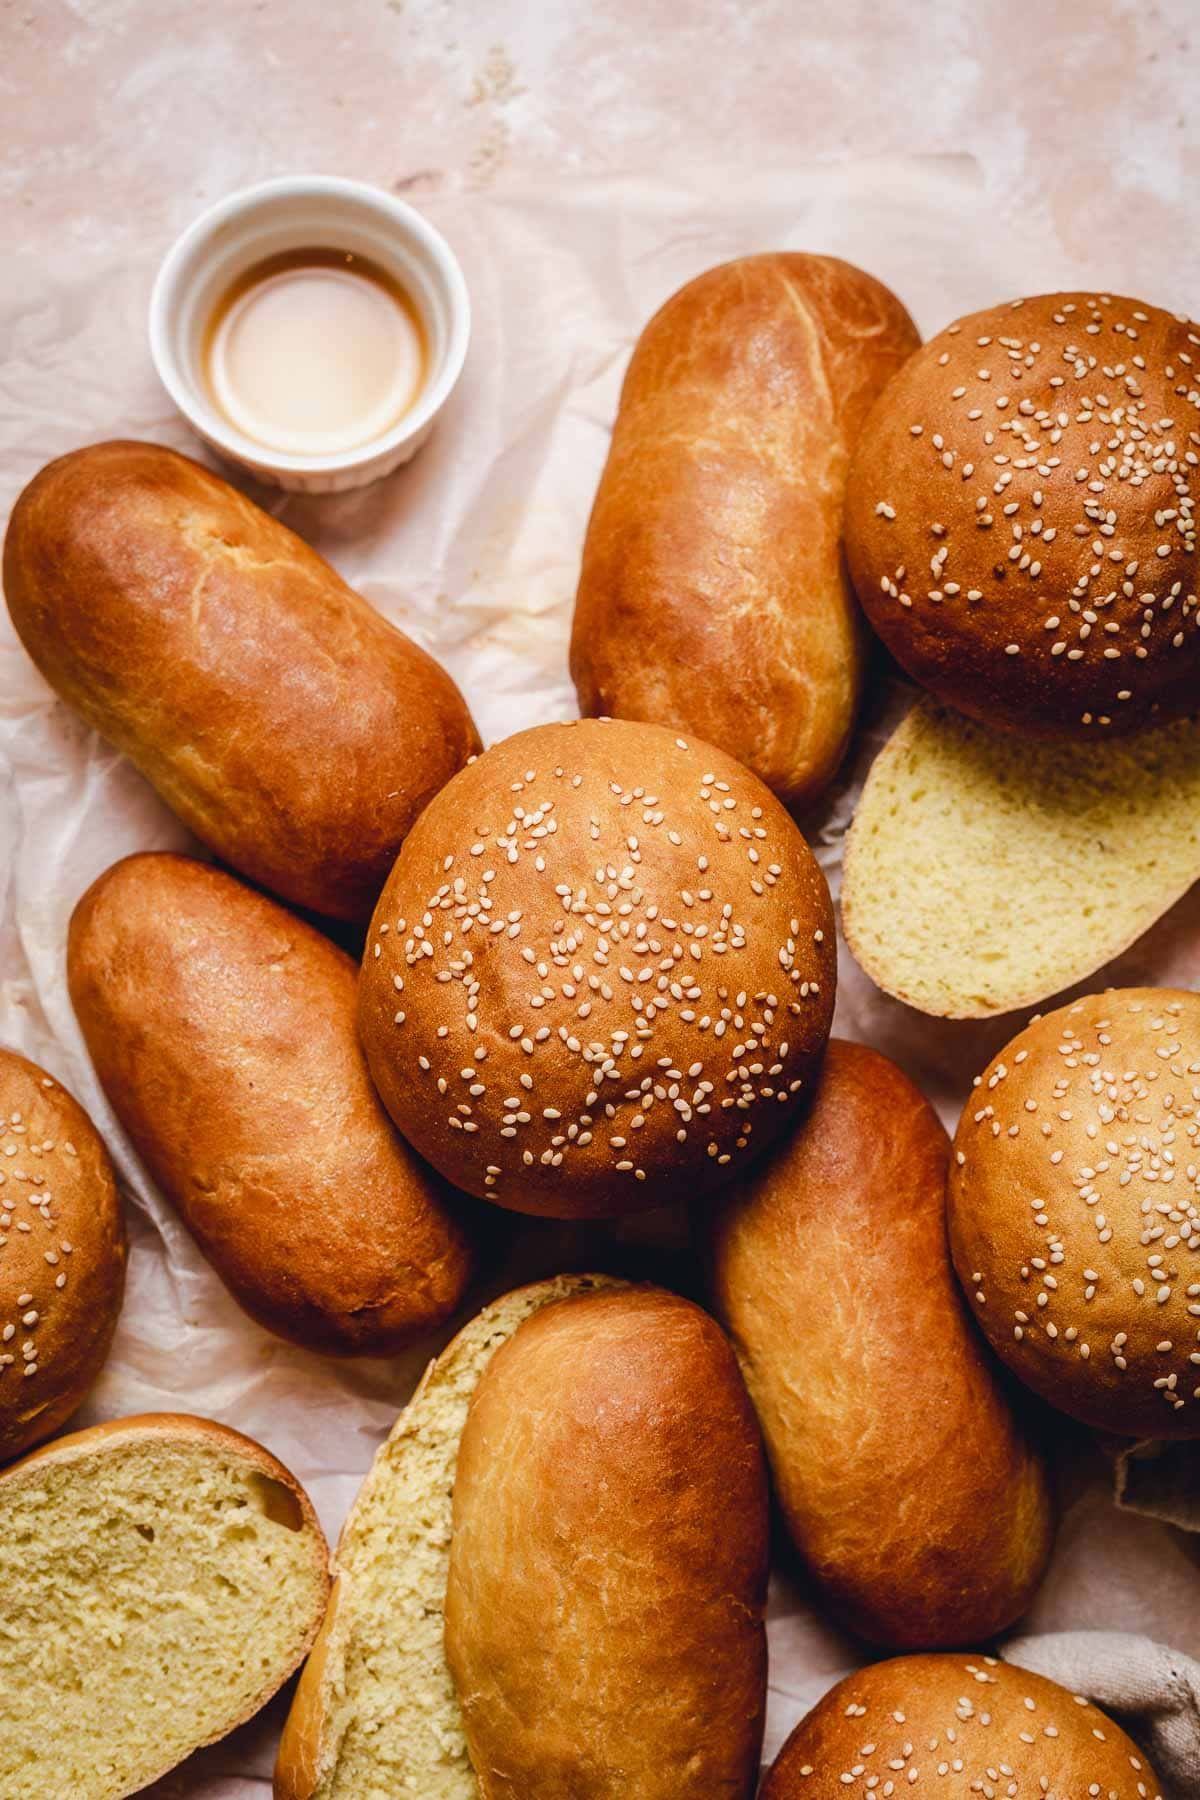 Several bread buns and hotdog buns placed on top and next to each other on crumpled baking paper.